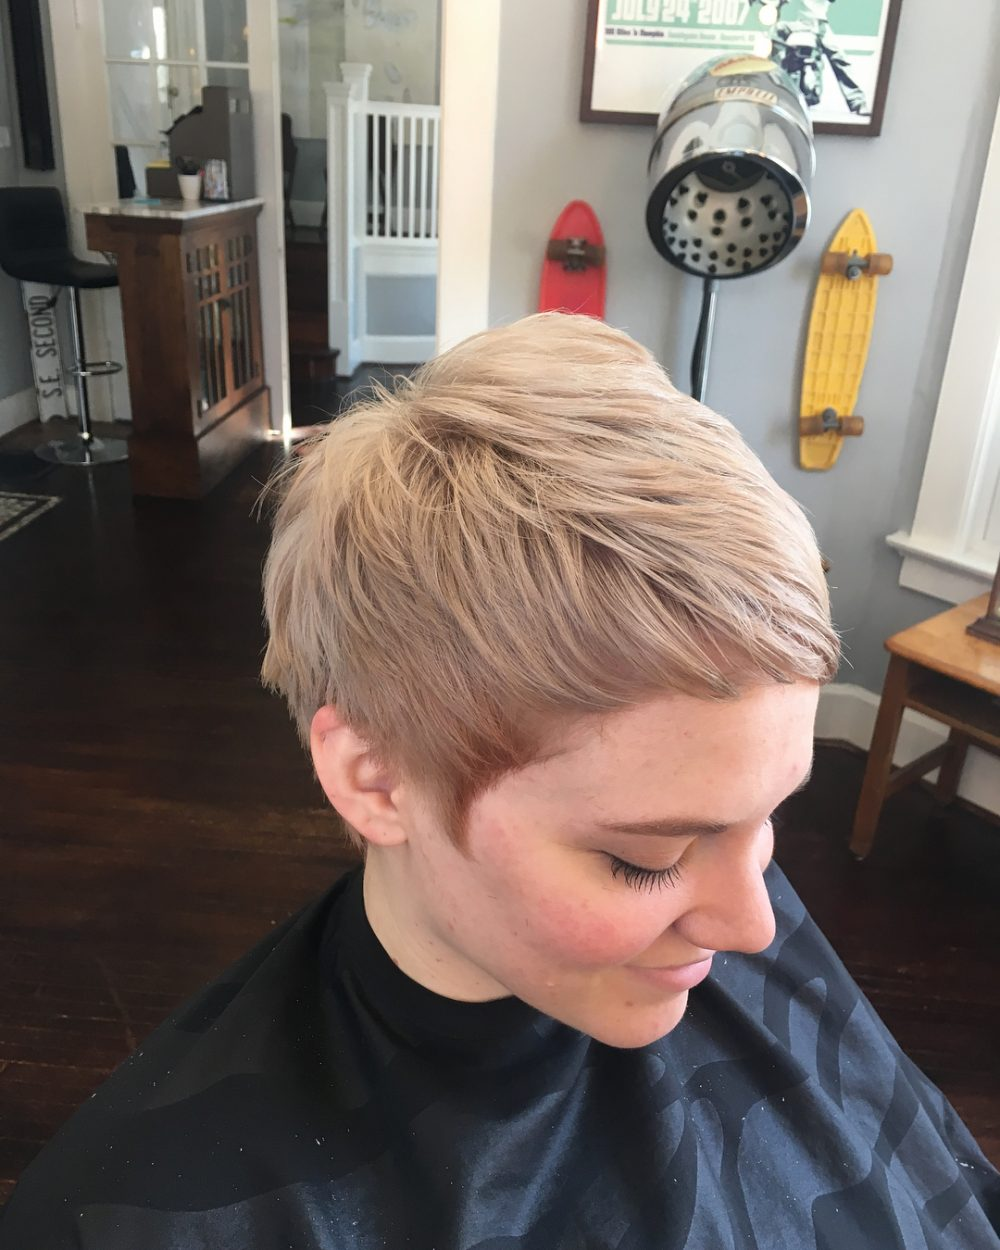 Salon Hairstyles For Short Hair 30 Very Short Haircuts You Have To See In 2019